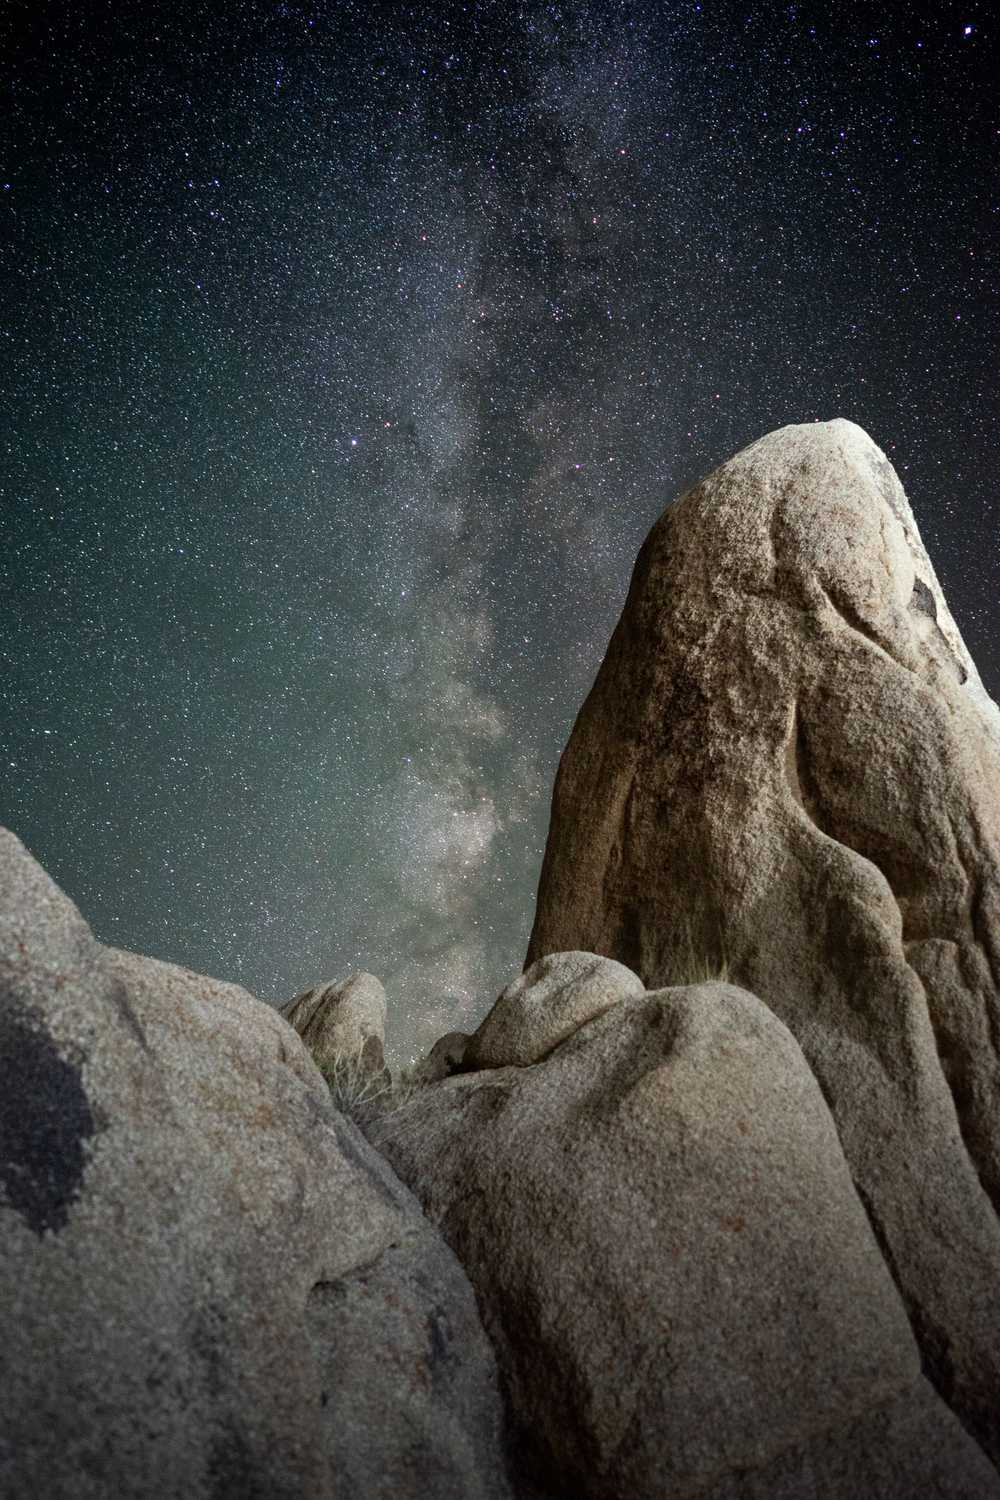 brown rock formations under starry night